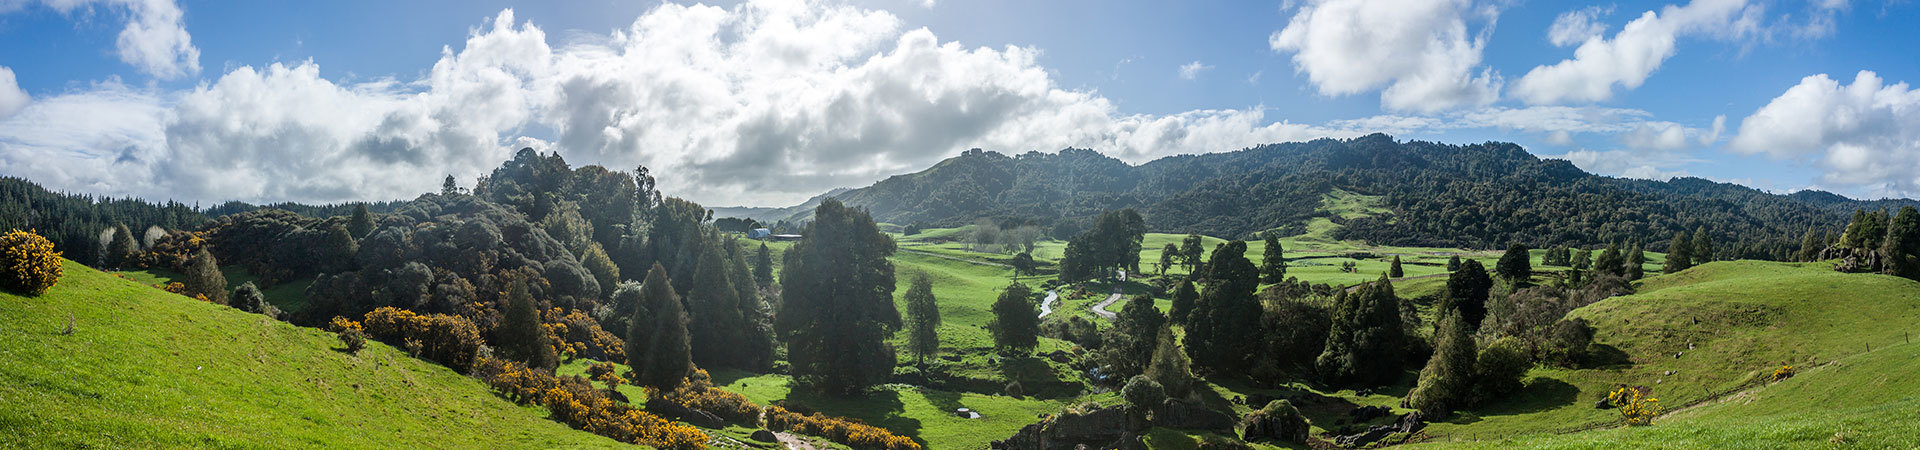 Waitomo, New Zealand